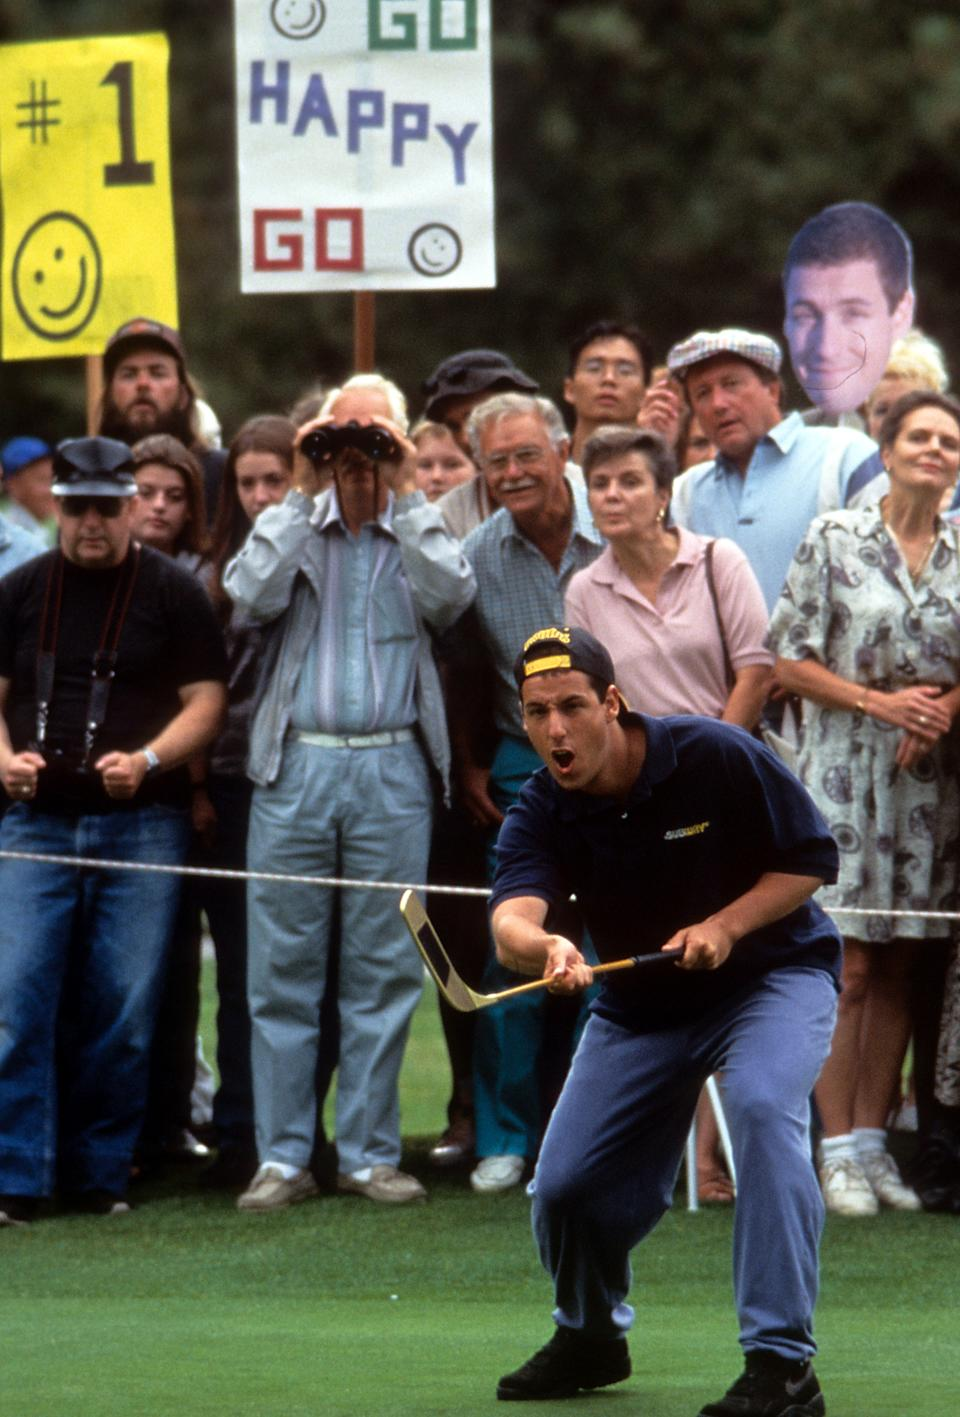 Adam Sandler plays golf in a scene from the film 'Happy Gilmore', 1996. (Photo by Universal/Getty Images)